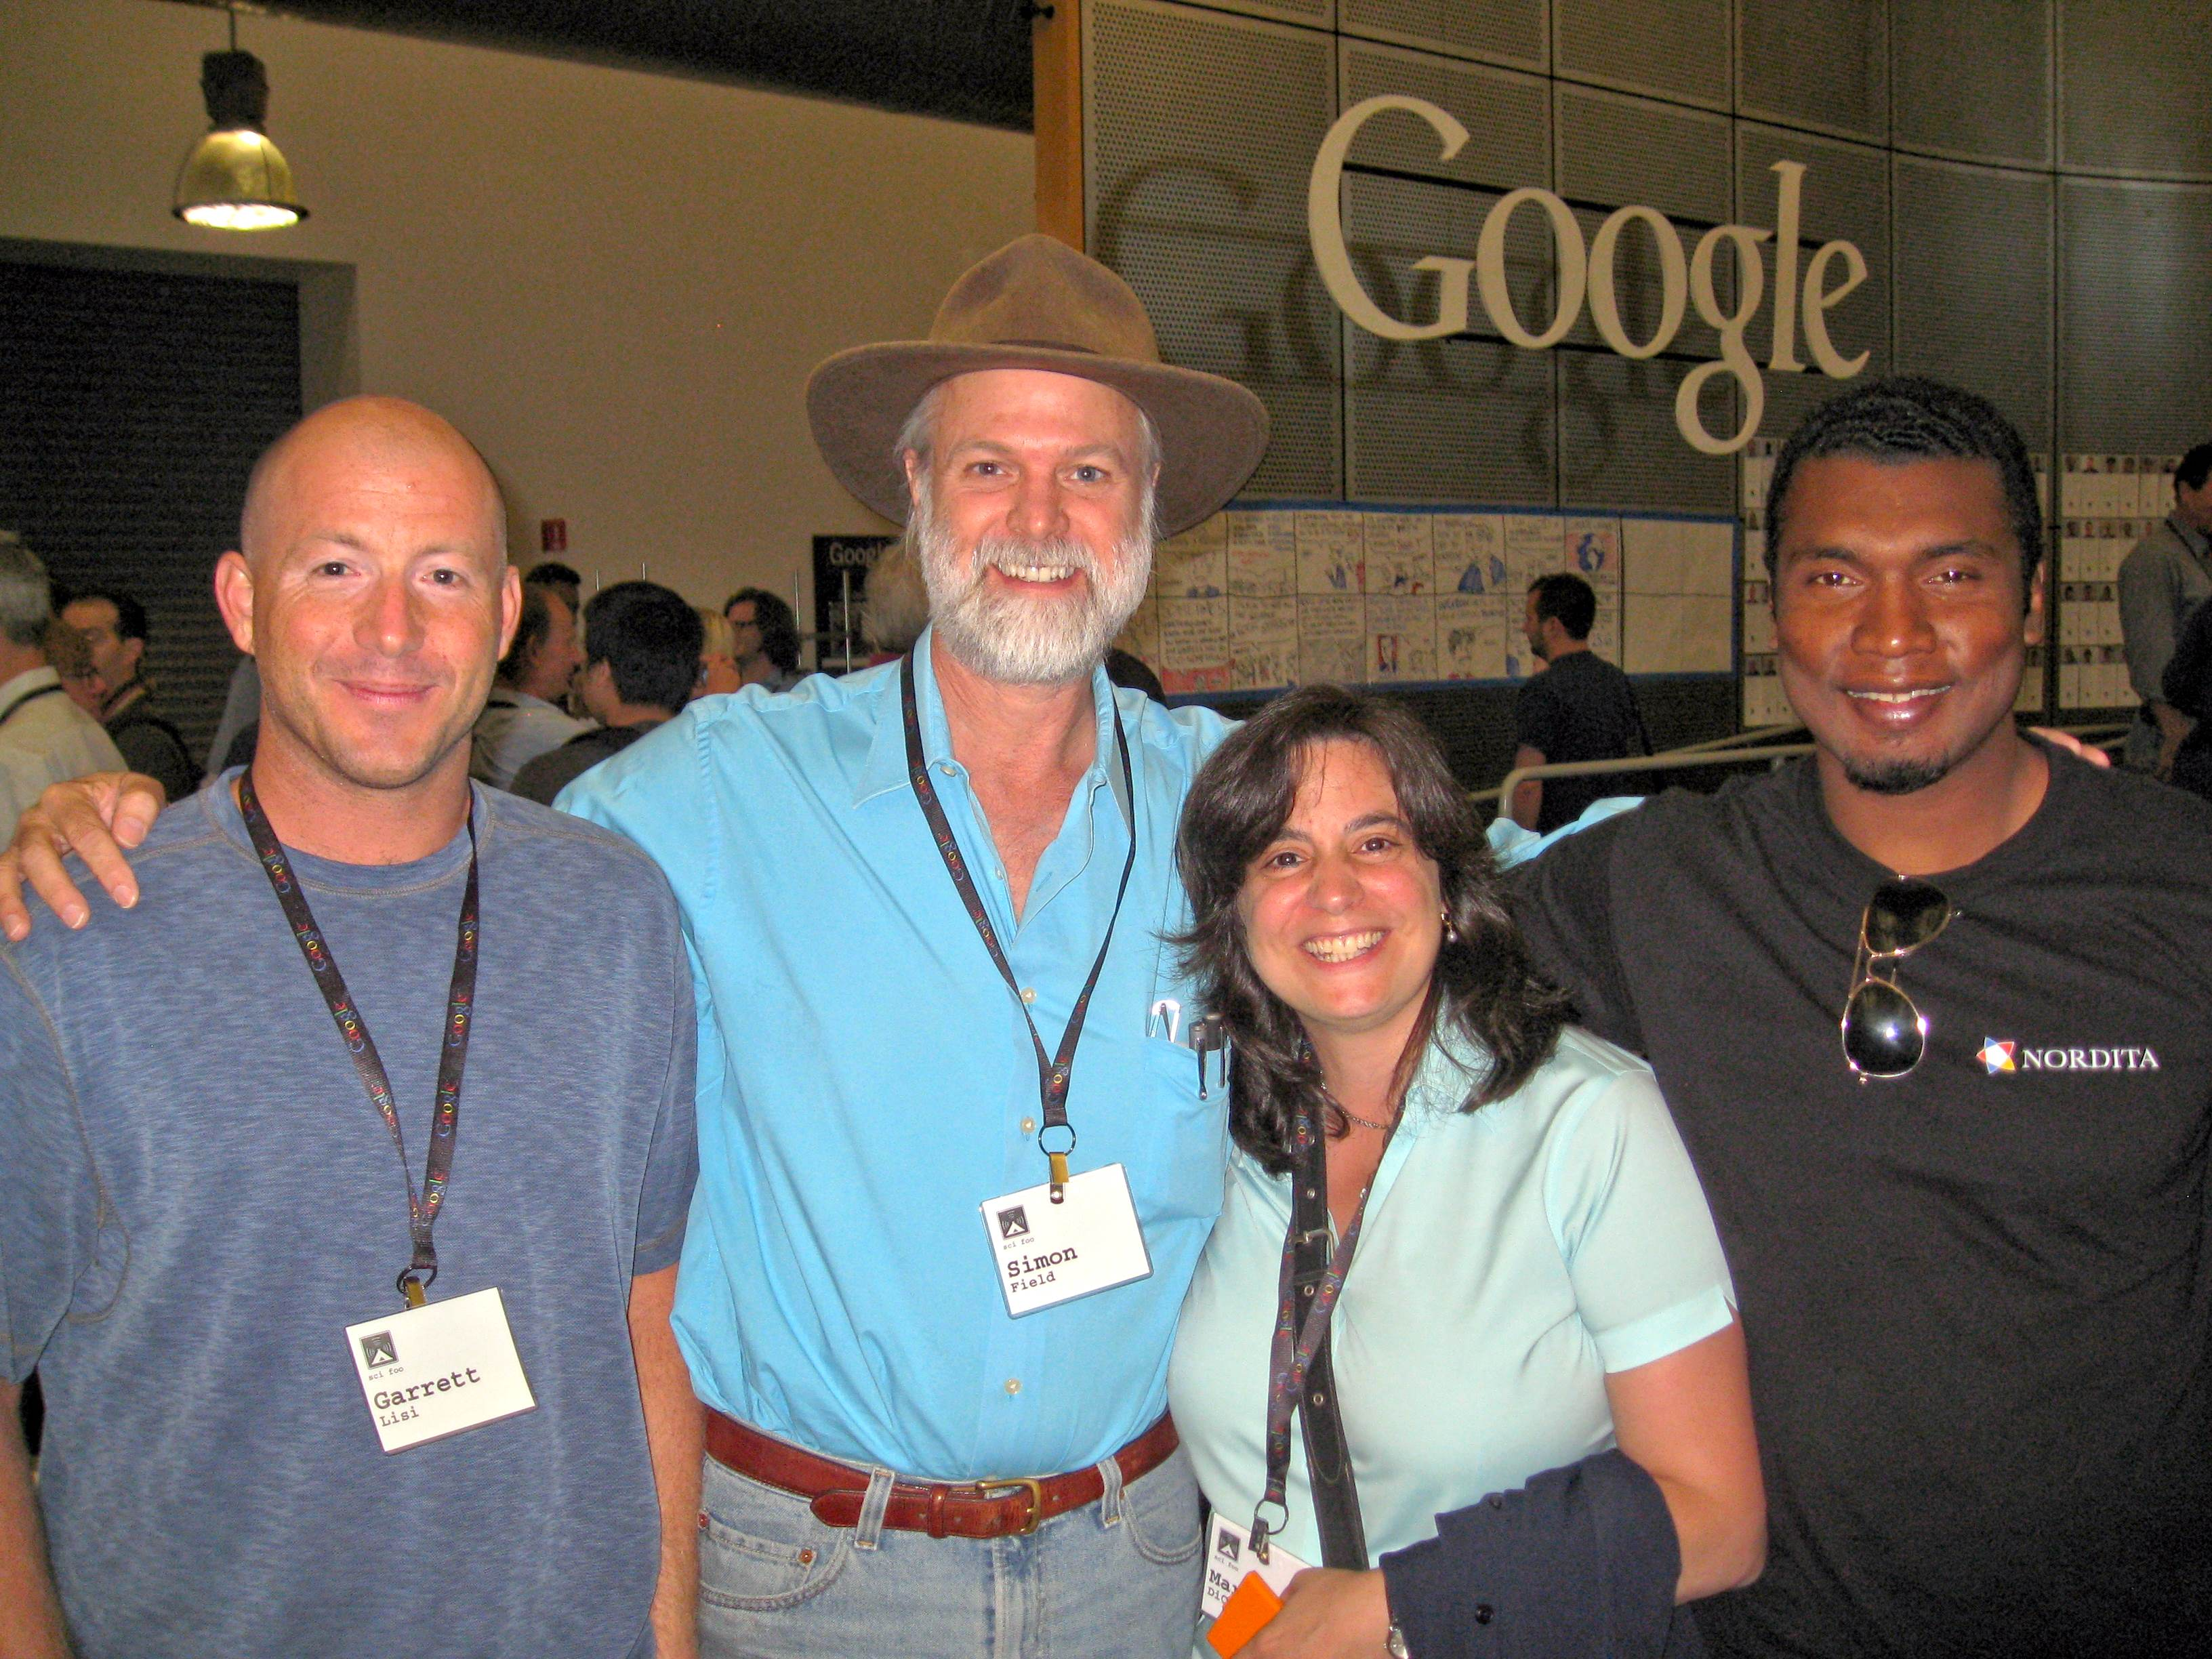 Physicist Garrett Lisi, executive editor of Scientific American Mariette DiChristina, and cosmologist Stephon Alexander, pose with Simon Field